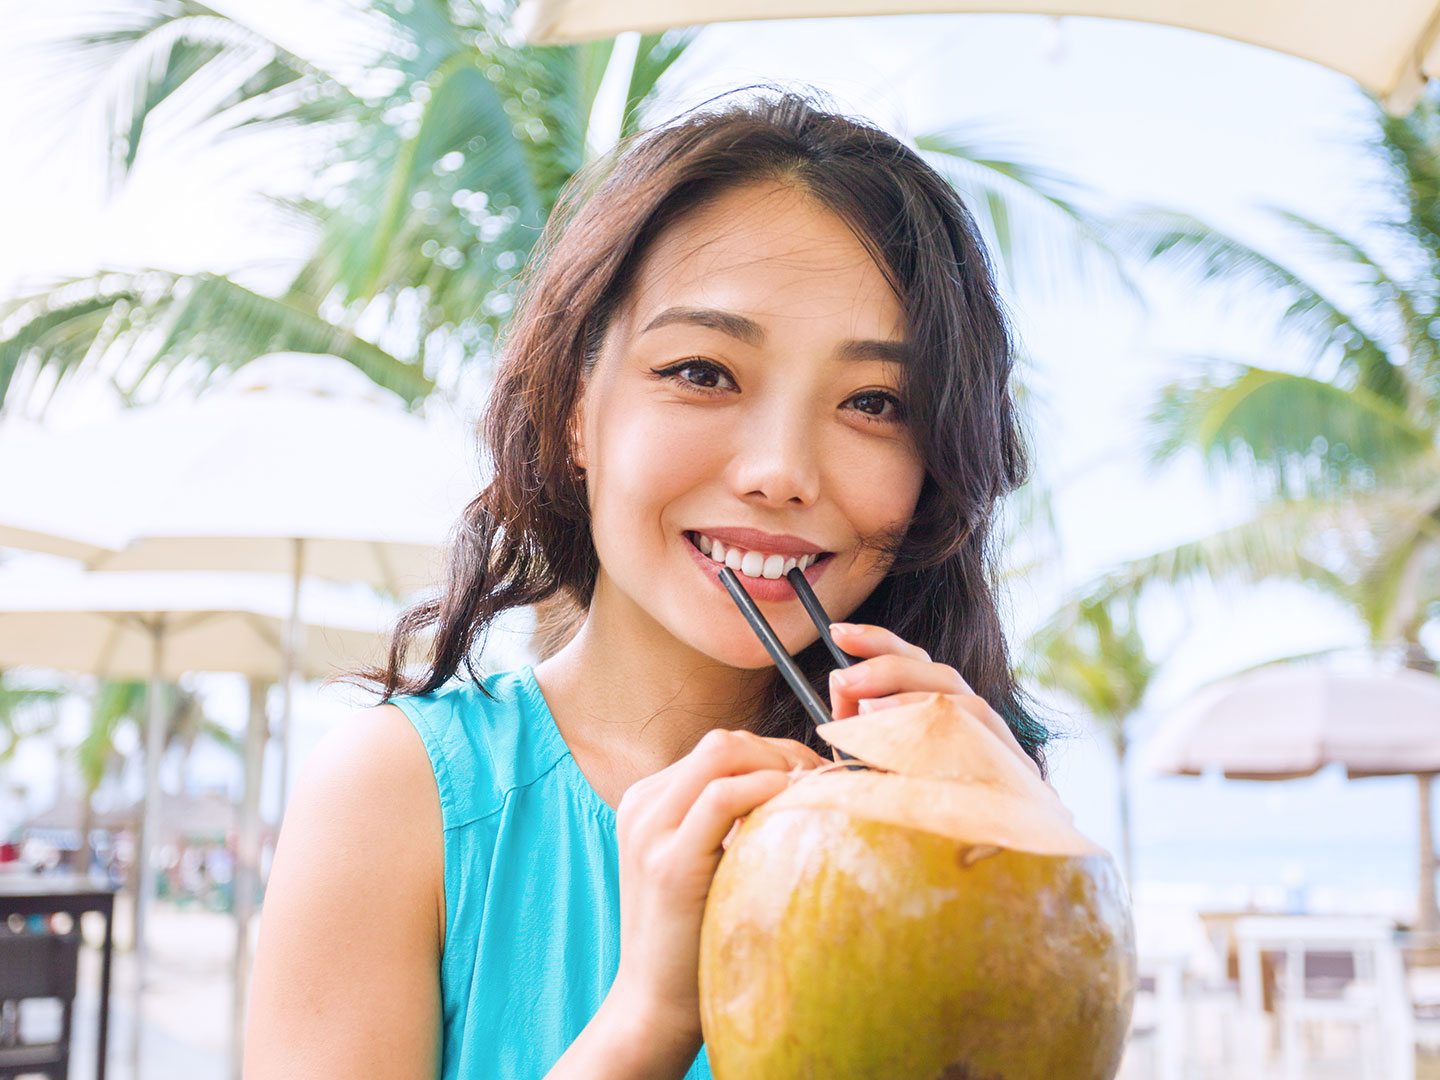 How to Drink Coconut Water